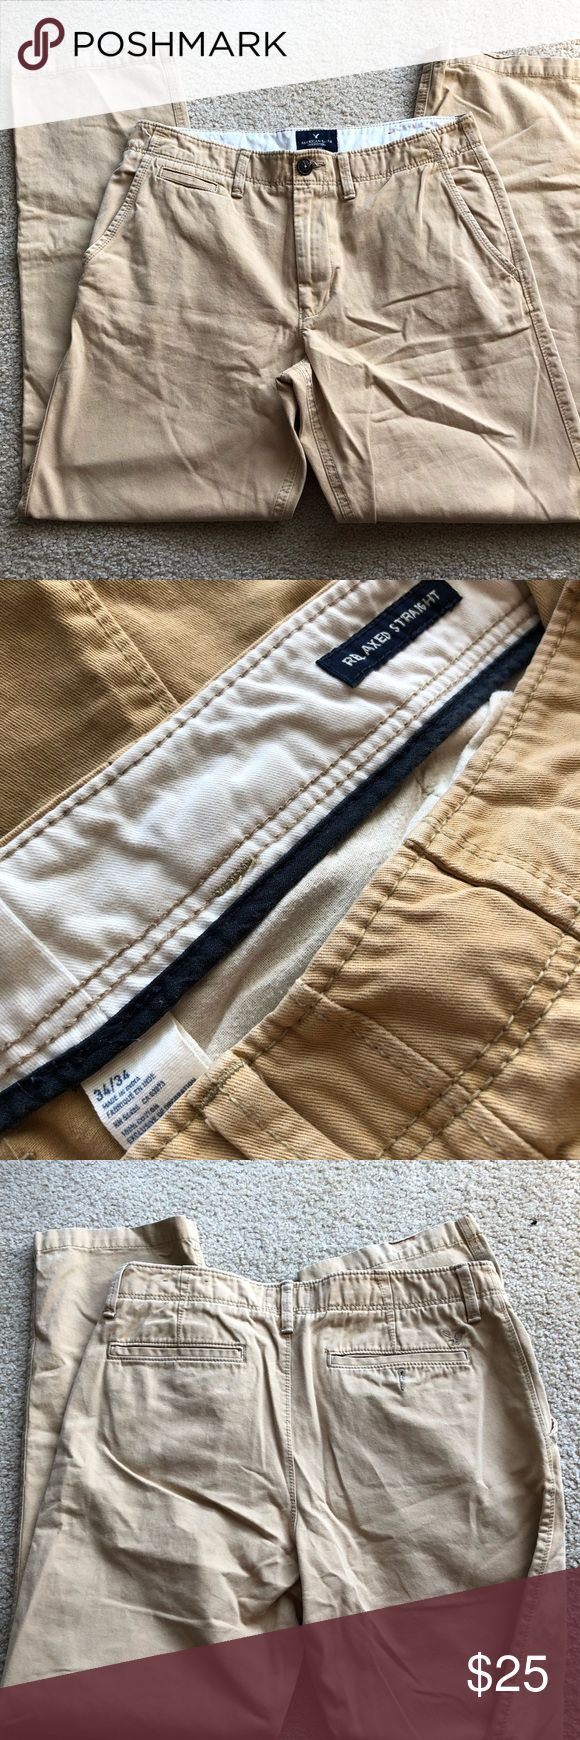 American Eagle Mens Khaki Pants Great condition men's American Eagle extreme khaki pants! Size 34 waist 34 length. Very comfortable! Coming from clean home with no smoking or pets. American Eagle Outfitters Pants Chinos & Khakis